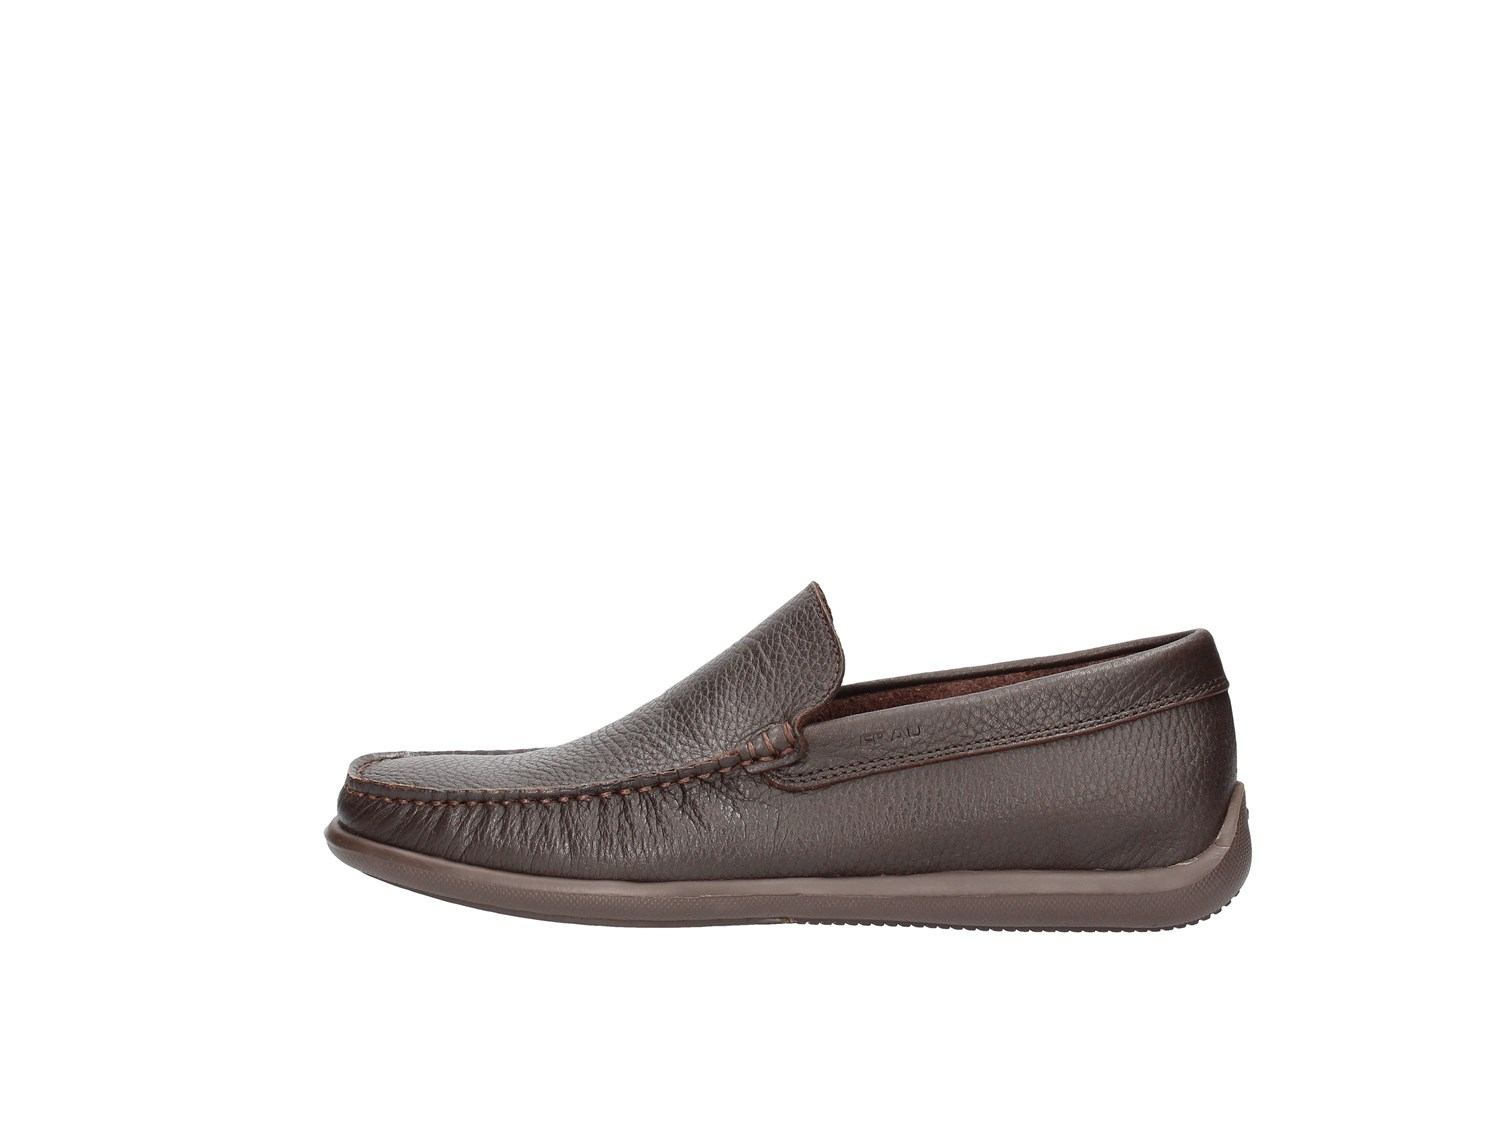 Frau 14n4 T Moro Shoes Man Moccasin